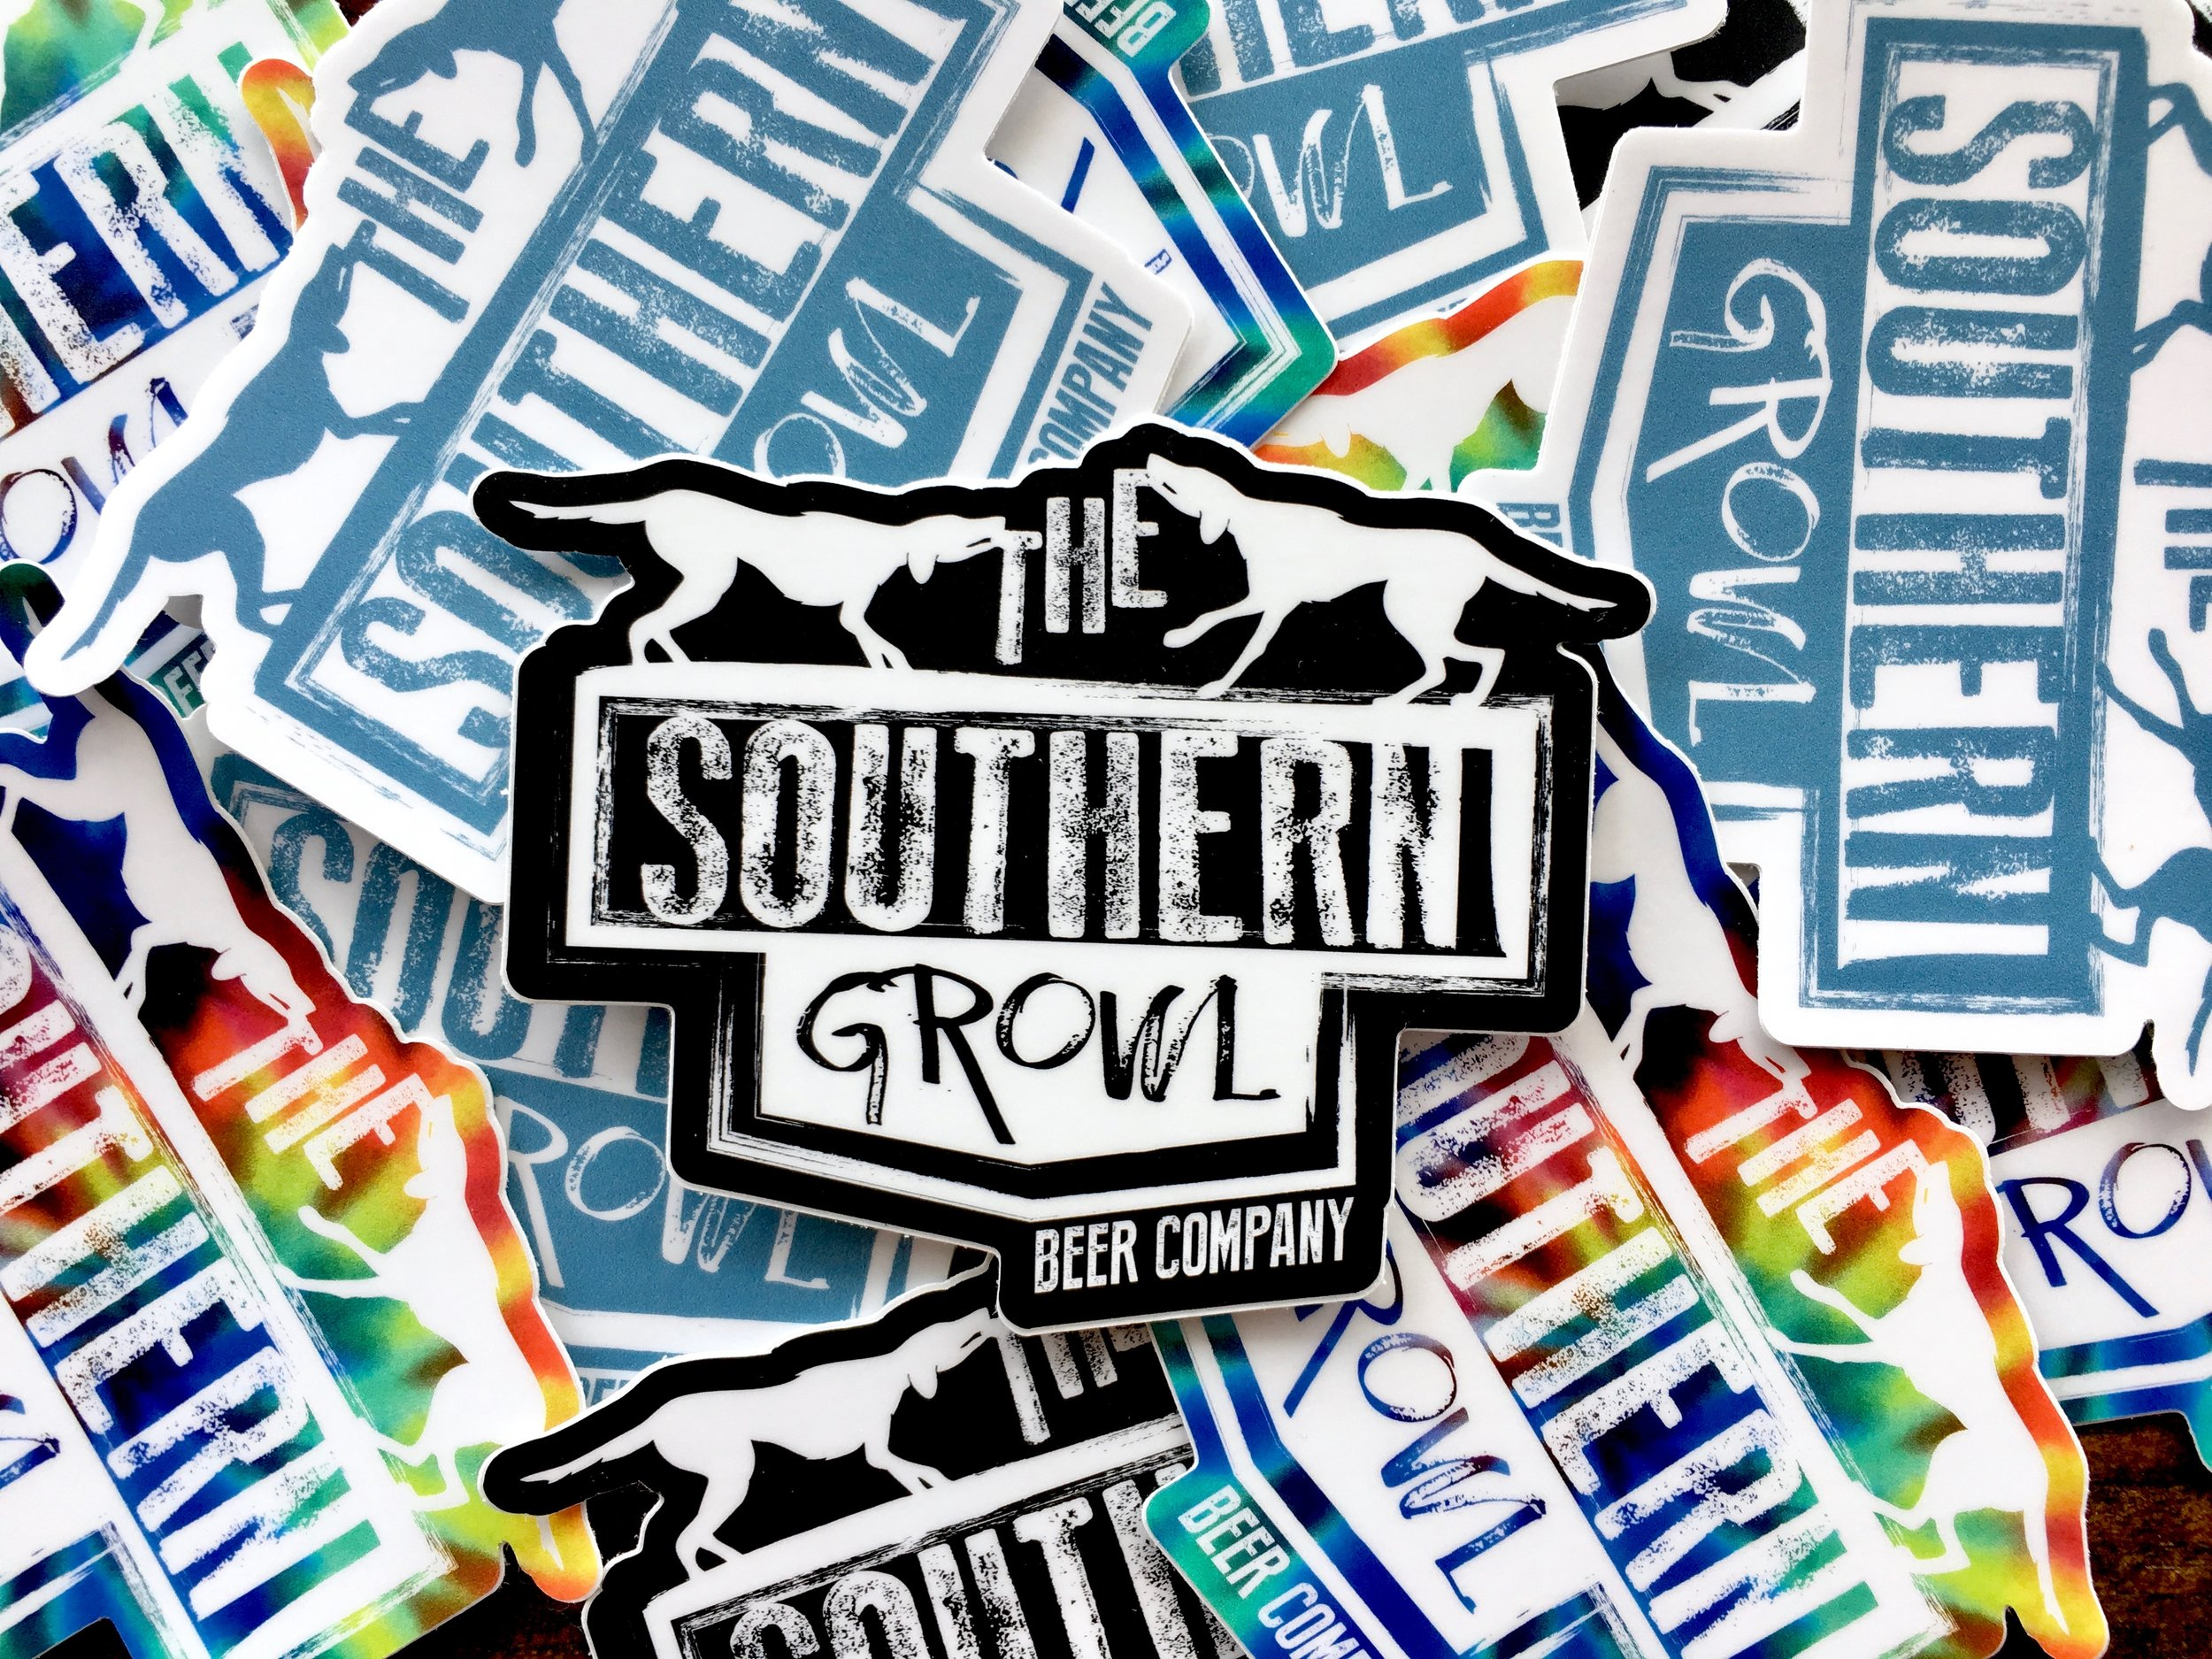 The Southern Growl Beer Company Crowdfunding Campaign is LIVE!    We have spent a lot of time creating perks that are unique and exciting. Head over to the campaign and grab all your favorites before they sell out! Your purchases through this campaign will be used to directly enhance your experience when you visit the new The Southern Growl Beer Company this fall. The funds will go toward furniture, décor, and final touches in the dining area, yard games and patio umbrellas, and additional kitchen equipment for the cooks to make even more ingredients in-house.    Some of our favorite Perks:    Sponsor a Stool/Bench:  Our seats see lots of butts. So show your support and love of booty with getting your name permanently placed on a bar stool or bench.   Collaborate with the Cooks:  Sit down with Chef Joseph McCarter, Eli Biggs, and/or Kierstin Dudley to collaborate on your favorite sandwich or small plate. You can name it and we'll feature it on our menu for about 8 weeks. This perk includes your item and a drink each week your item is on the menu.. that's 8 sandwiches + 8 beers!    Collaboration Brew & Release Party:  Come brew a beer with us! We'll sit down with you to create your dream beer. Then you get to come hang out with us on brew day and help us come up with a name. Once it is time to release the beer, we will throw a Private Release Party for you and up to 20 friends, with drinks & hors d'oeuvres included!    Get Saucy:  We make all of our pickles, sauces, dressings, dips, and spreads in house and they are banging! Chef Joseph McCarter will make you a pint each of 2 of your favorite pickles and/or sauces to take home and enjoy at your leisure.    Beer Sensory Class:  Certified Cicerones Matt Bowes and Josh Waycaster will take you through a 2 hours long lesson discussing the brewing process, how to expand your palate, beer styles, off-flavor training, and a guided tasting.     Seriously, if you're interested...ACT NOW! These perks WILL SELL OUT.       CLICK HERE TO VISIT OUR INDIEGOGO PAGE!